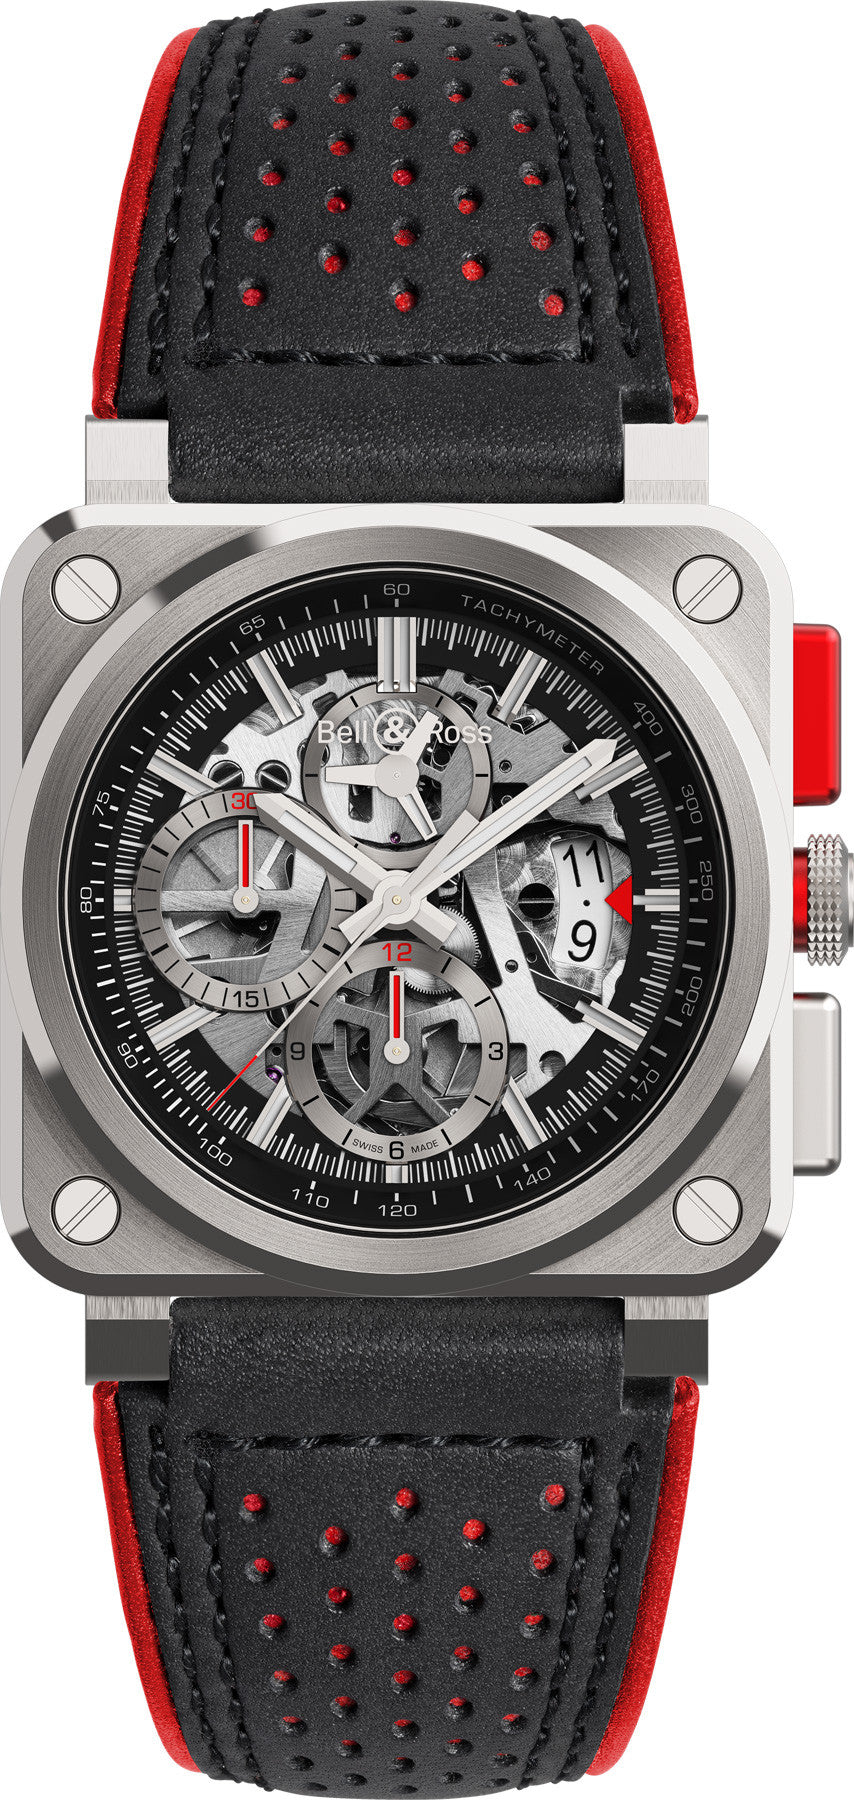 Bell & Ross Watch BR 03 94 AeroGT Limited Edition